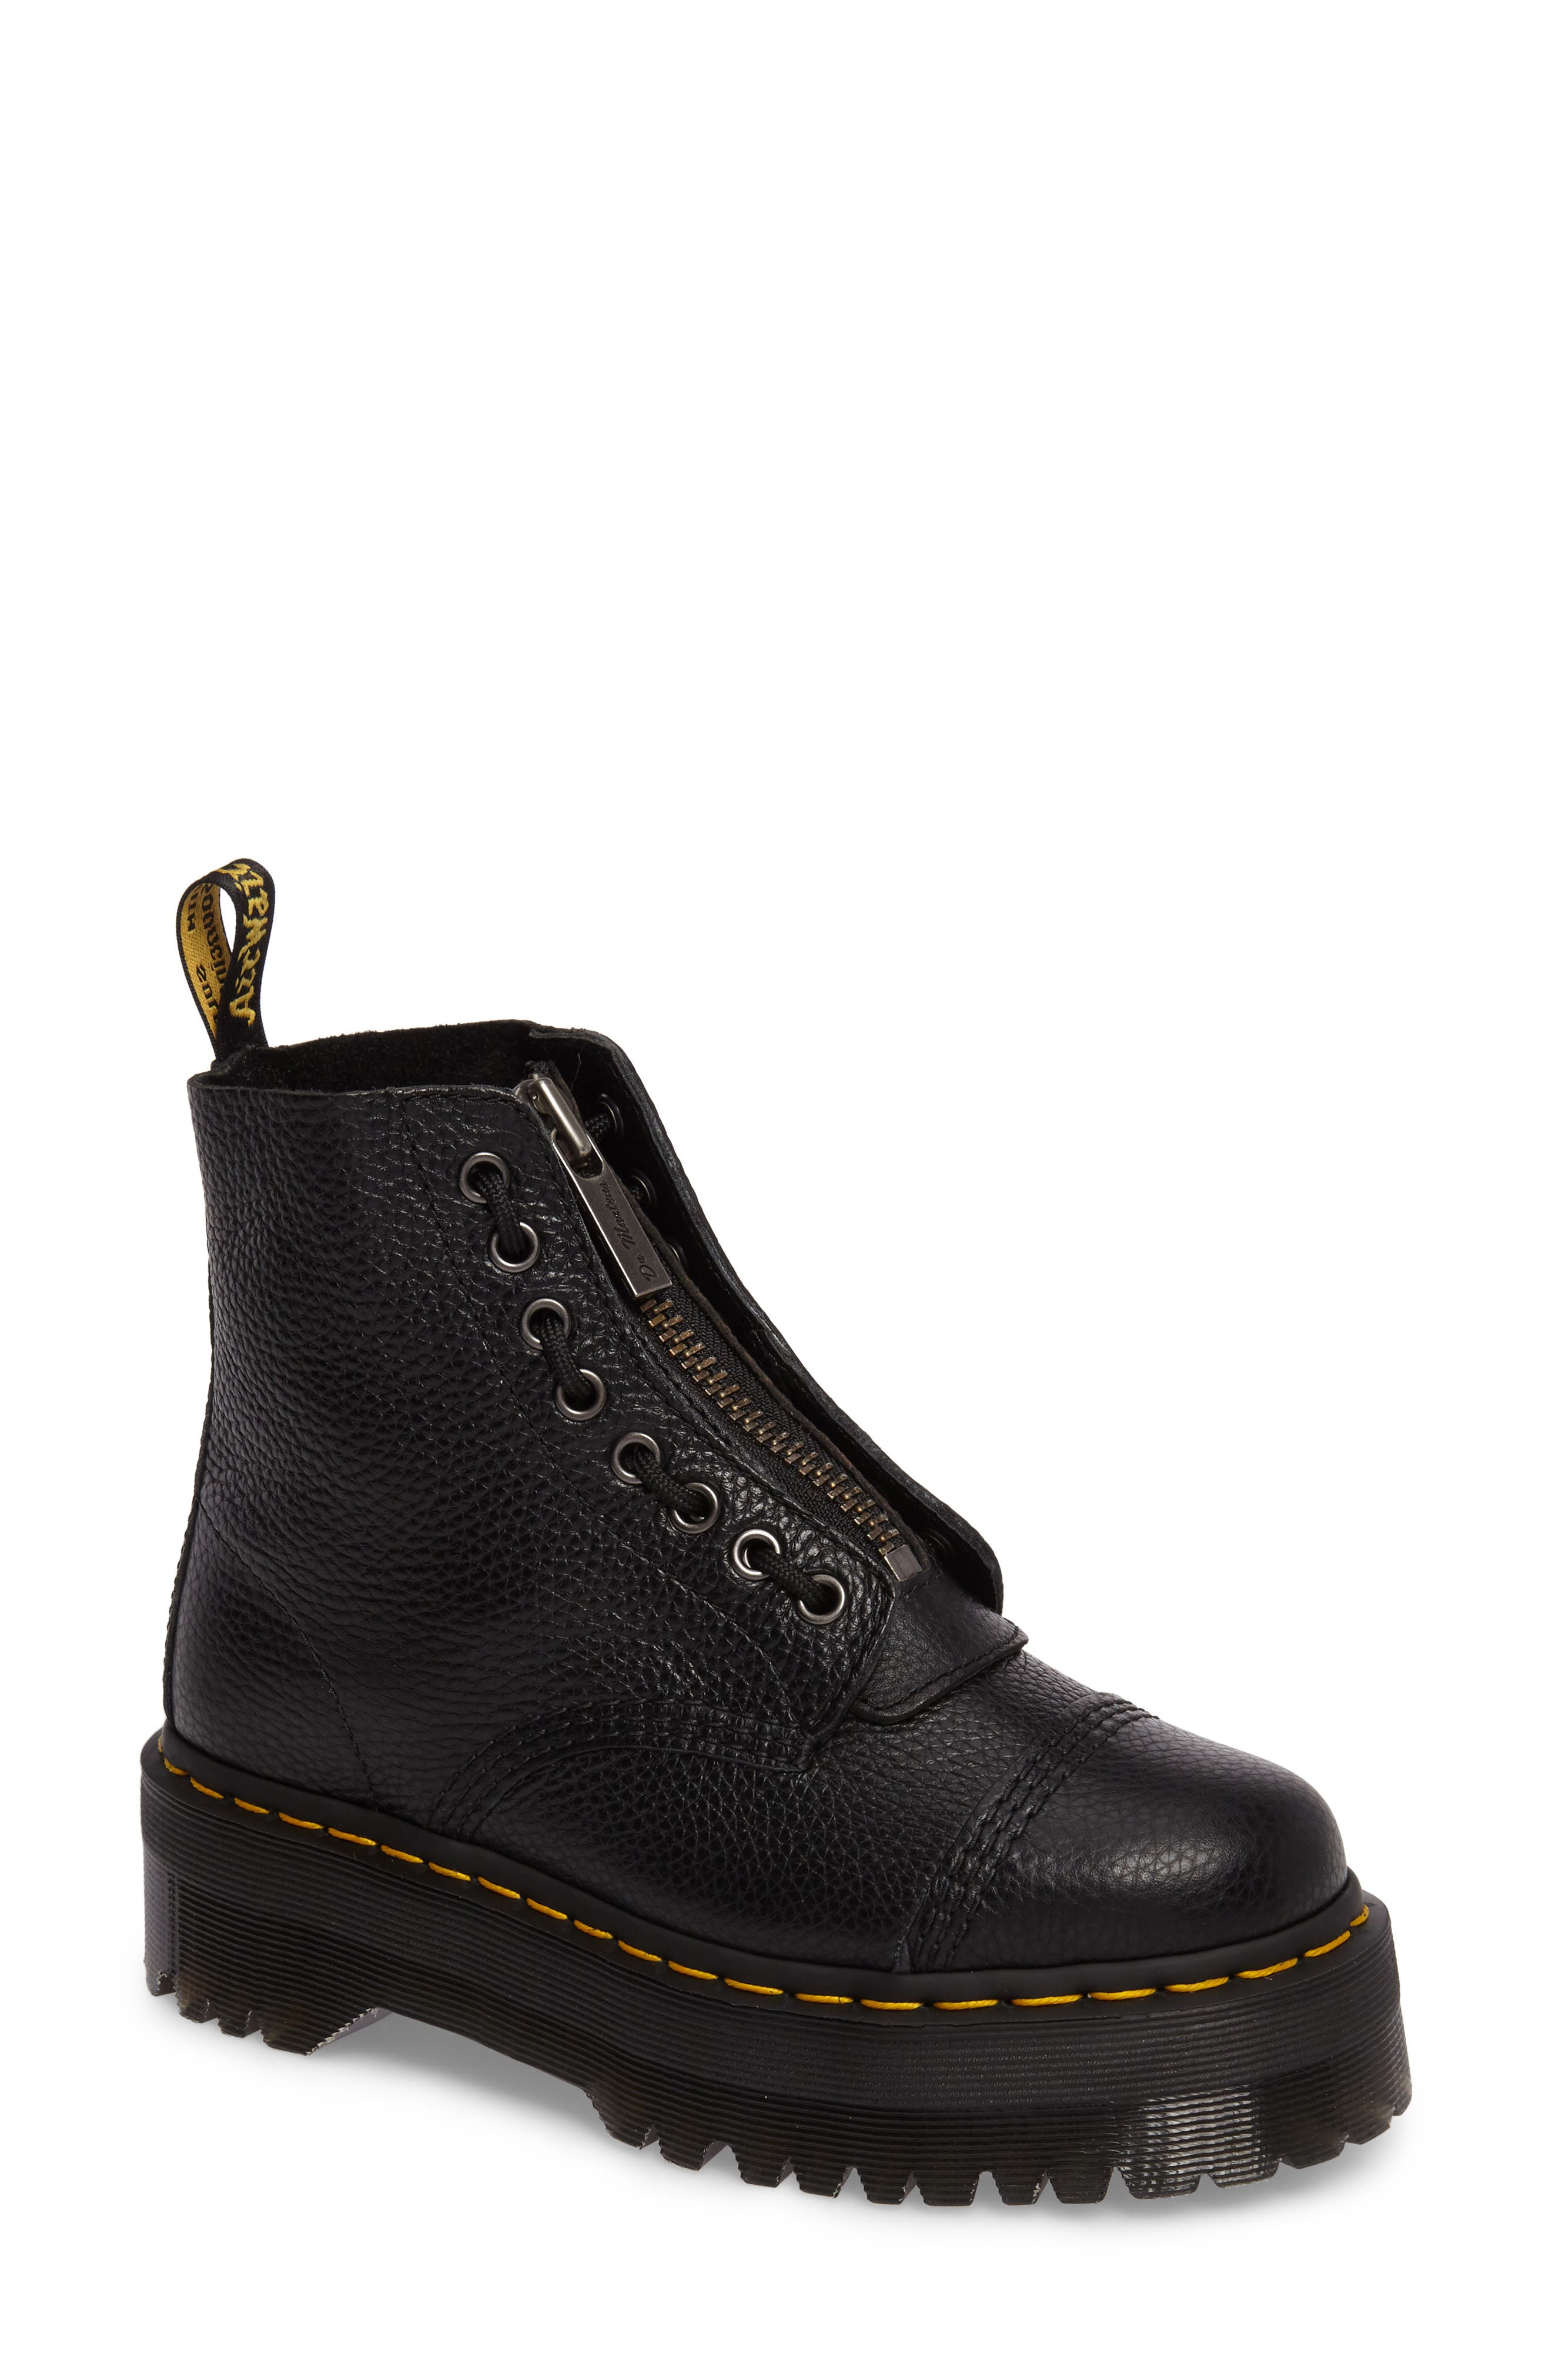 Alternate Image 1 Selected - Dr. Martens Sinclair Bootie (Women)